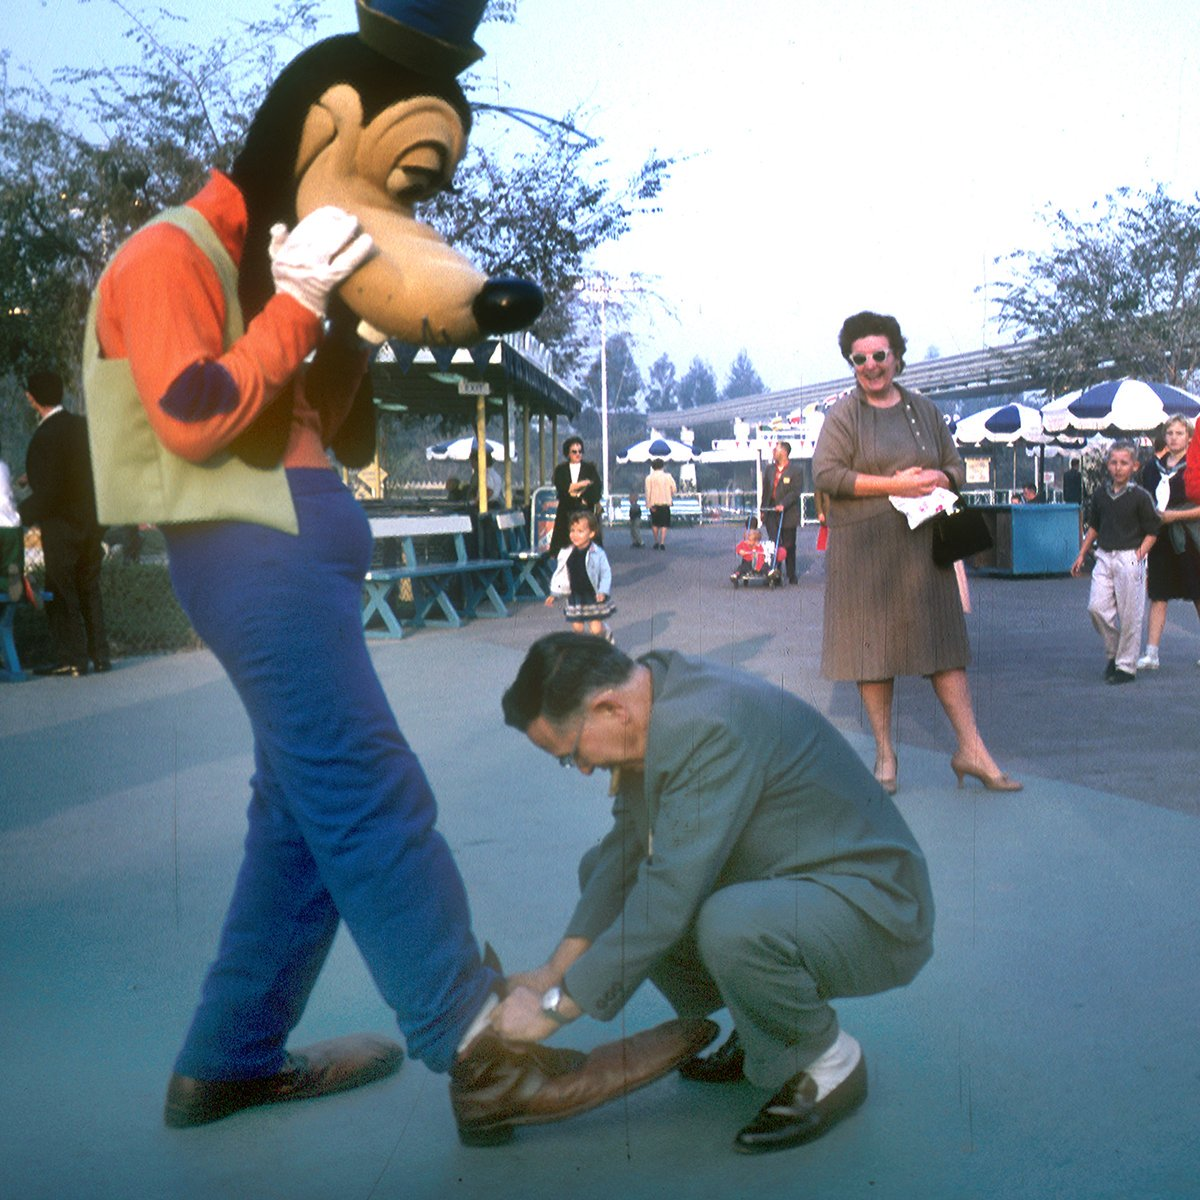 Slide 2 of 19: Oooh boy! A good samaritan steps in to lend a helping hand when Goofy's shoe came untied at Disneyland. Check out these 8 secret spots in Disney you never knew existed.